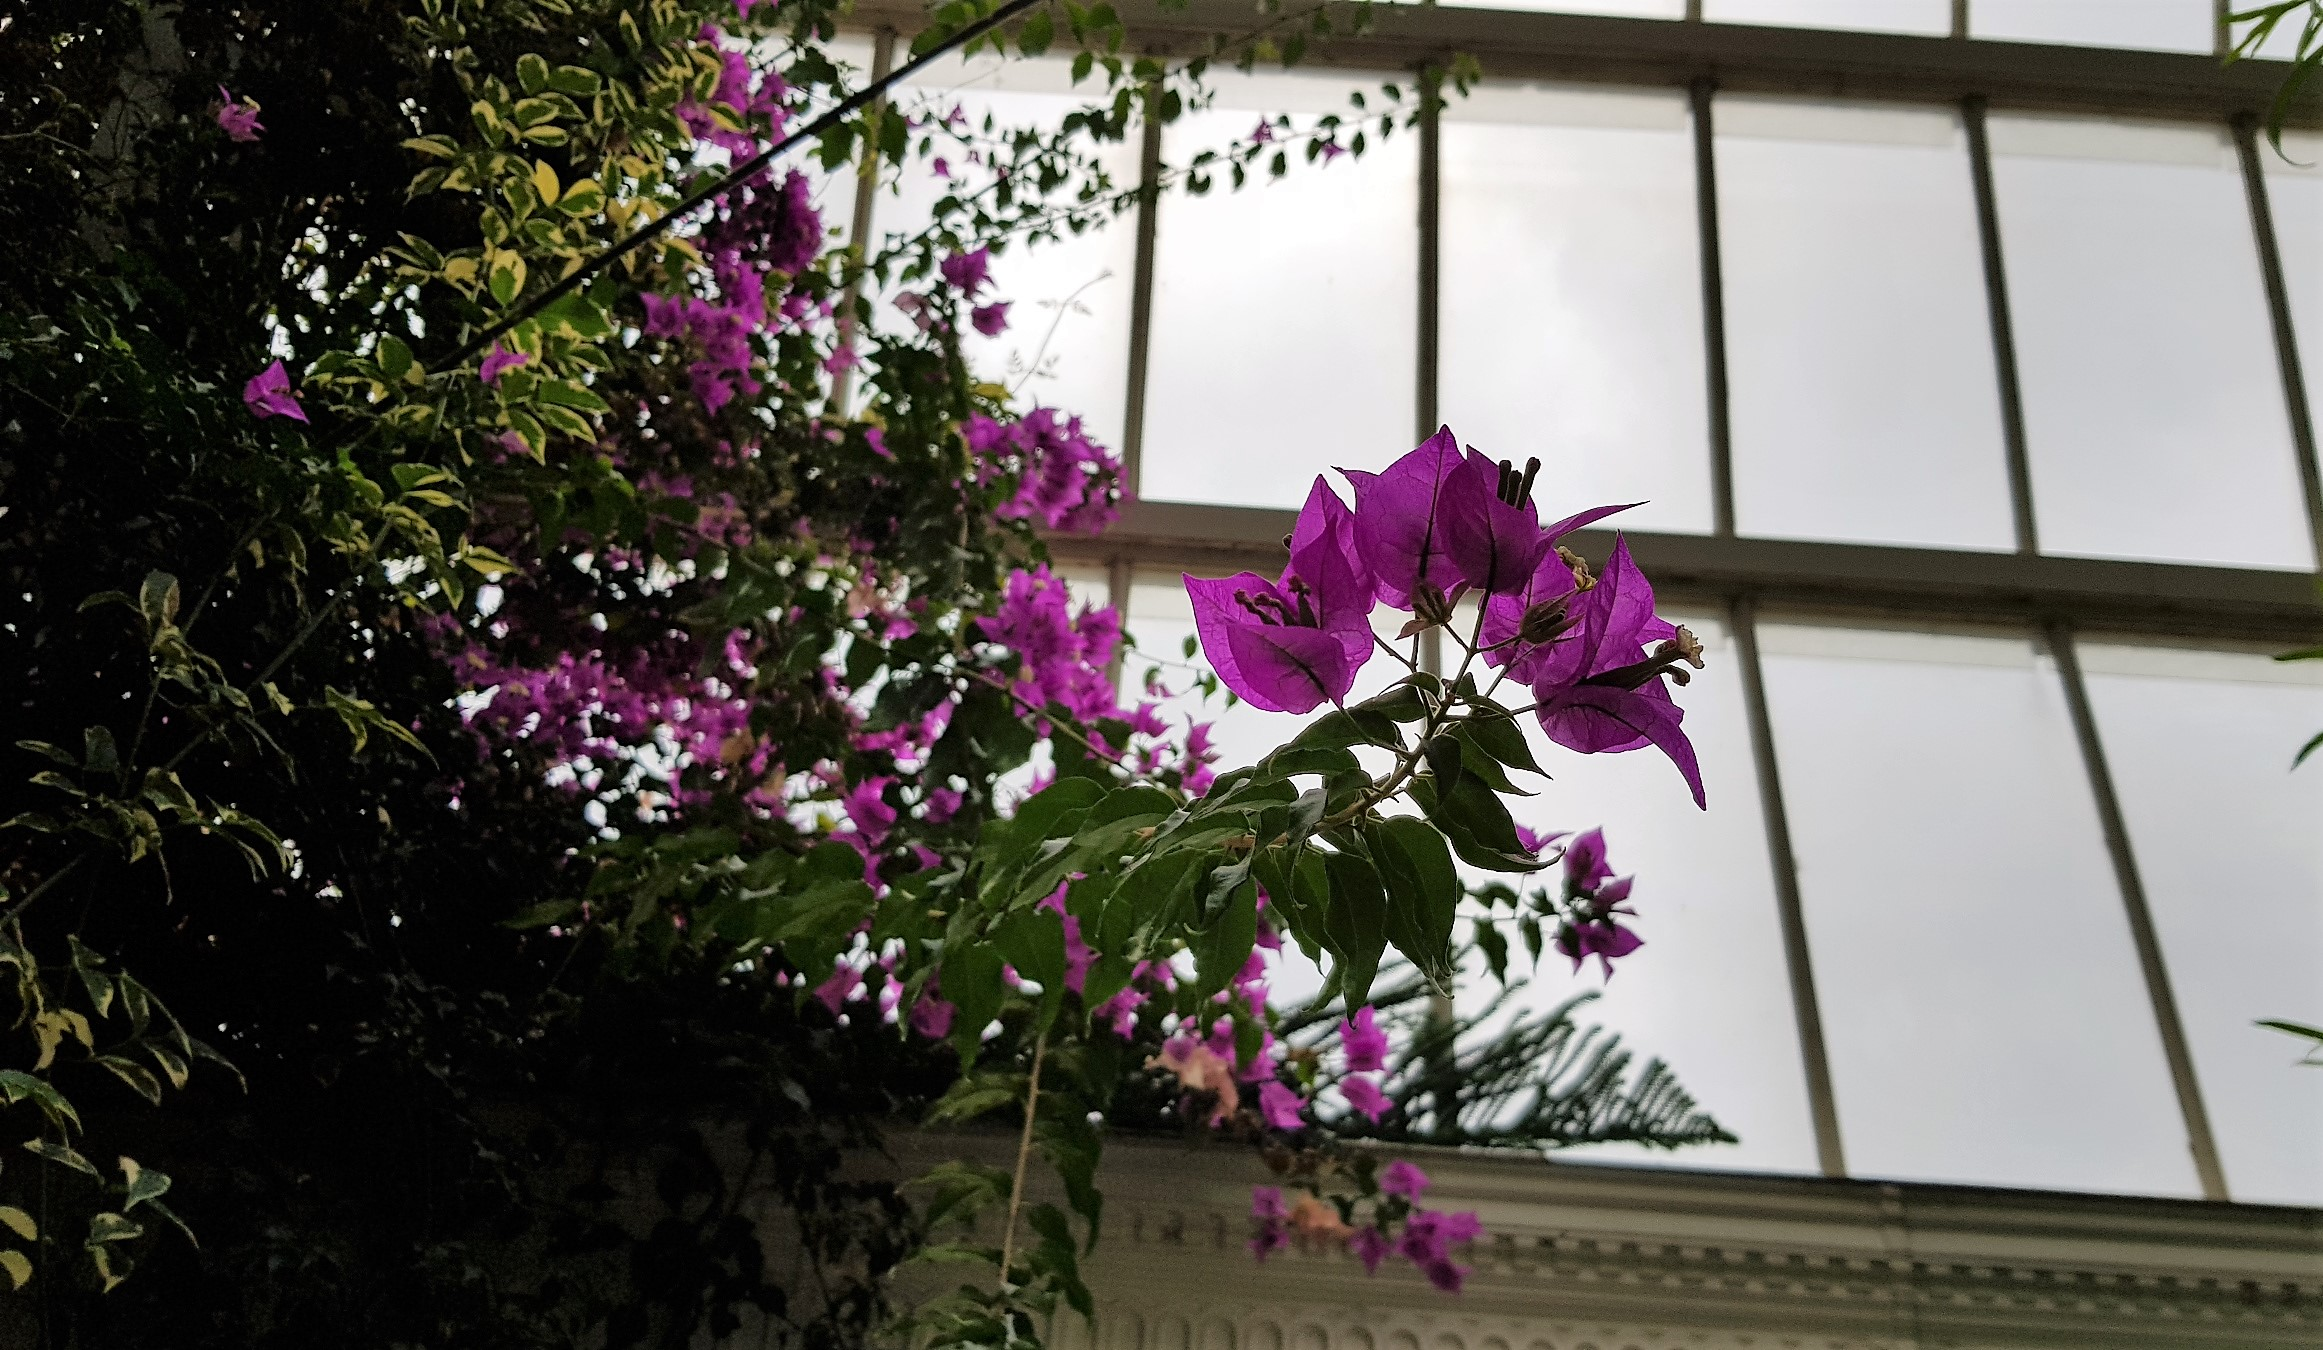 Pink bougainvillea flowers against a glass backdrop